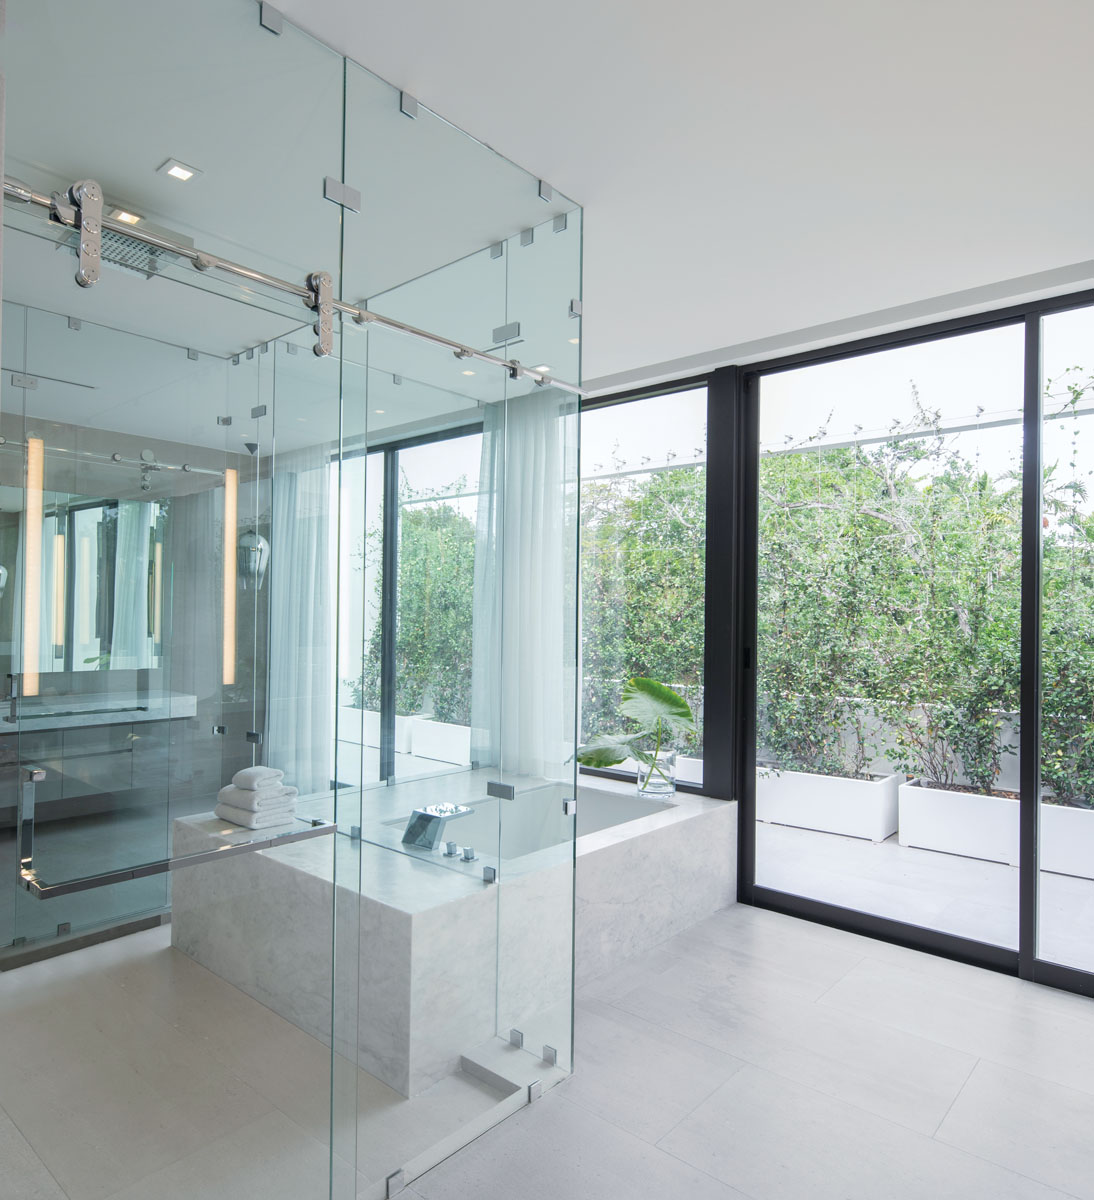 Sheer draperies pull open to welcome natural light into both the bedroom and the master bath, where a marble-clad tub offers spa-like relaxation and rejuvenation.